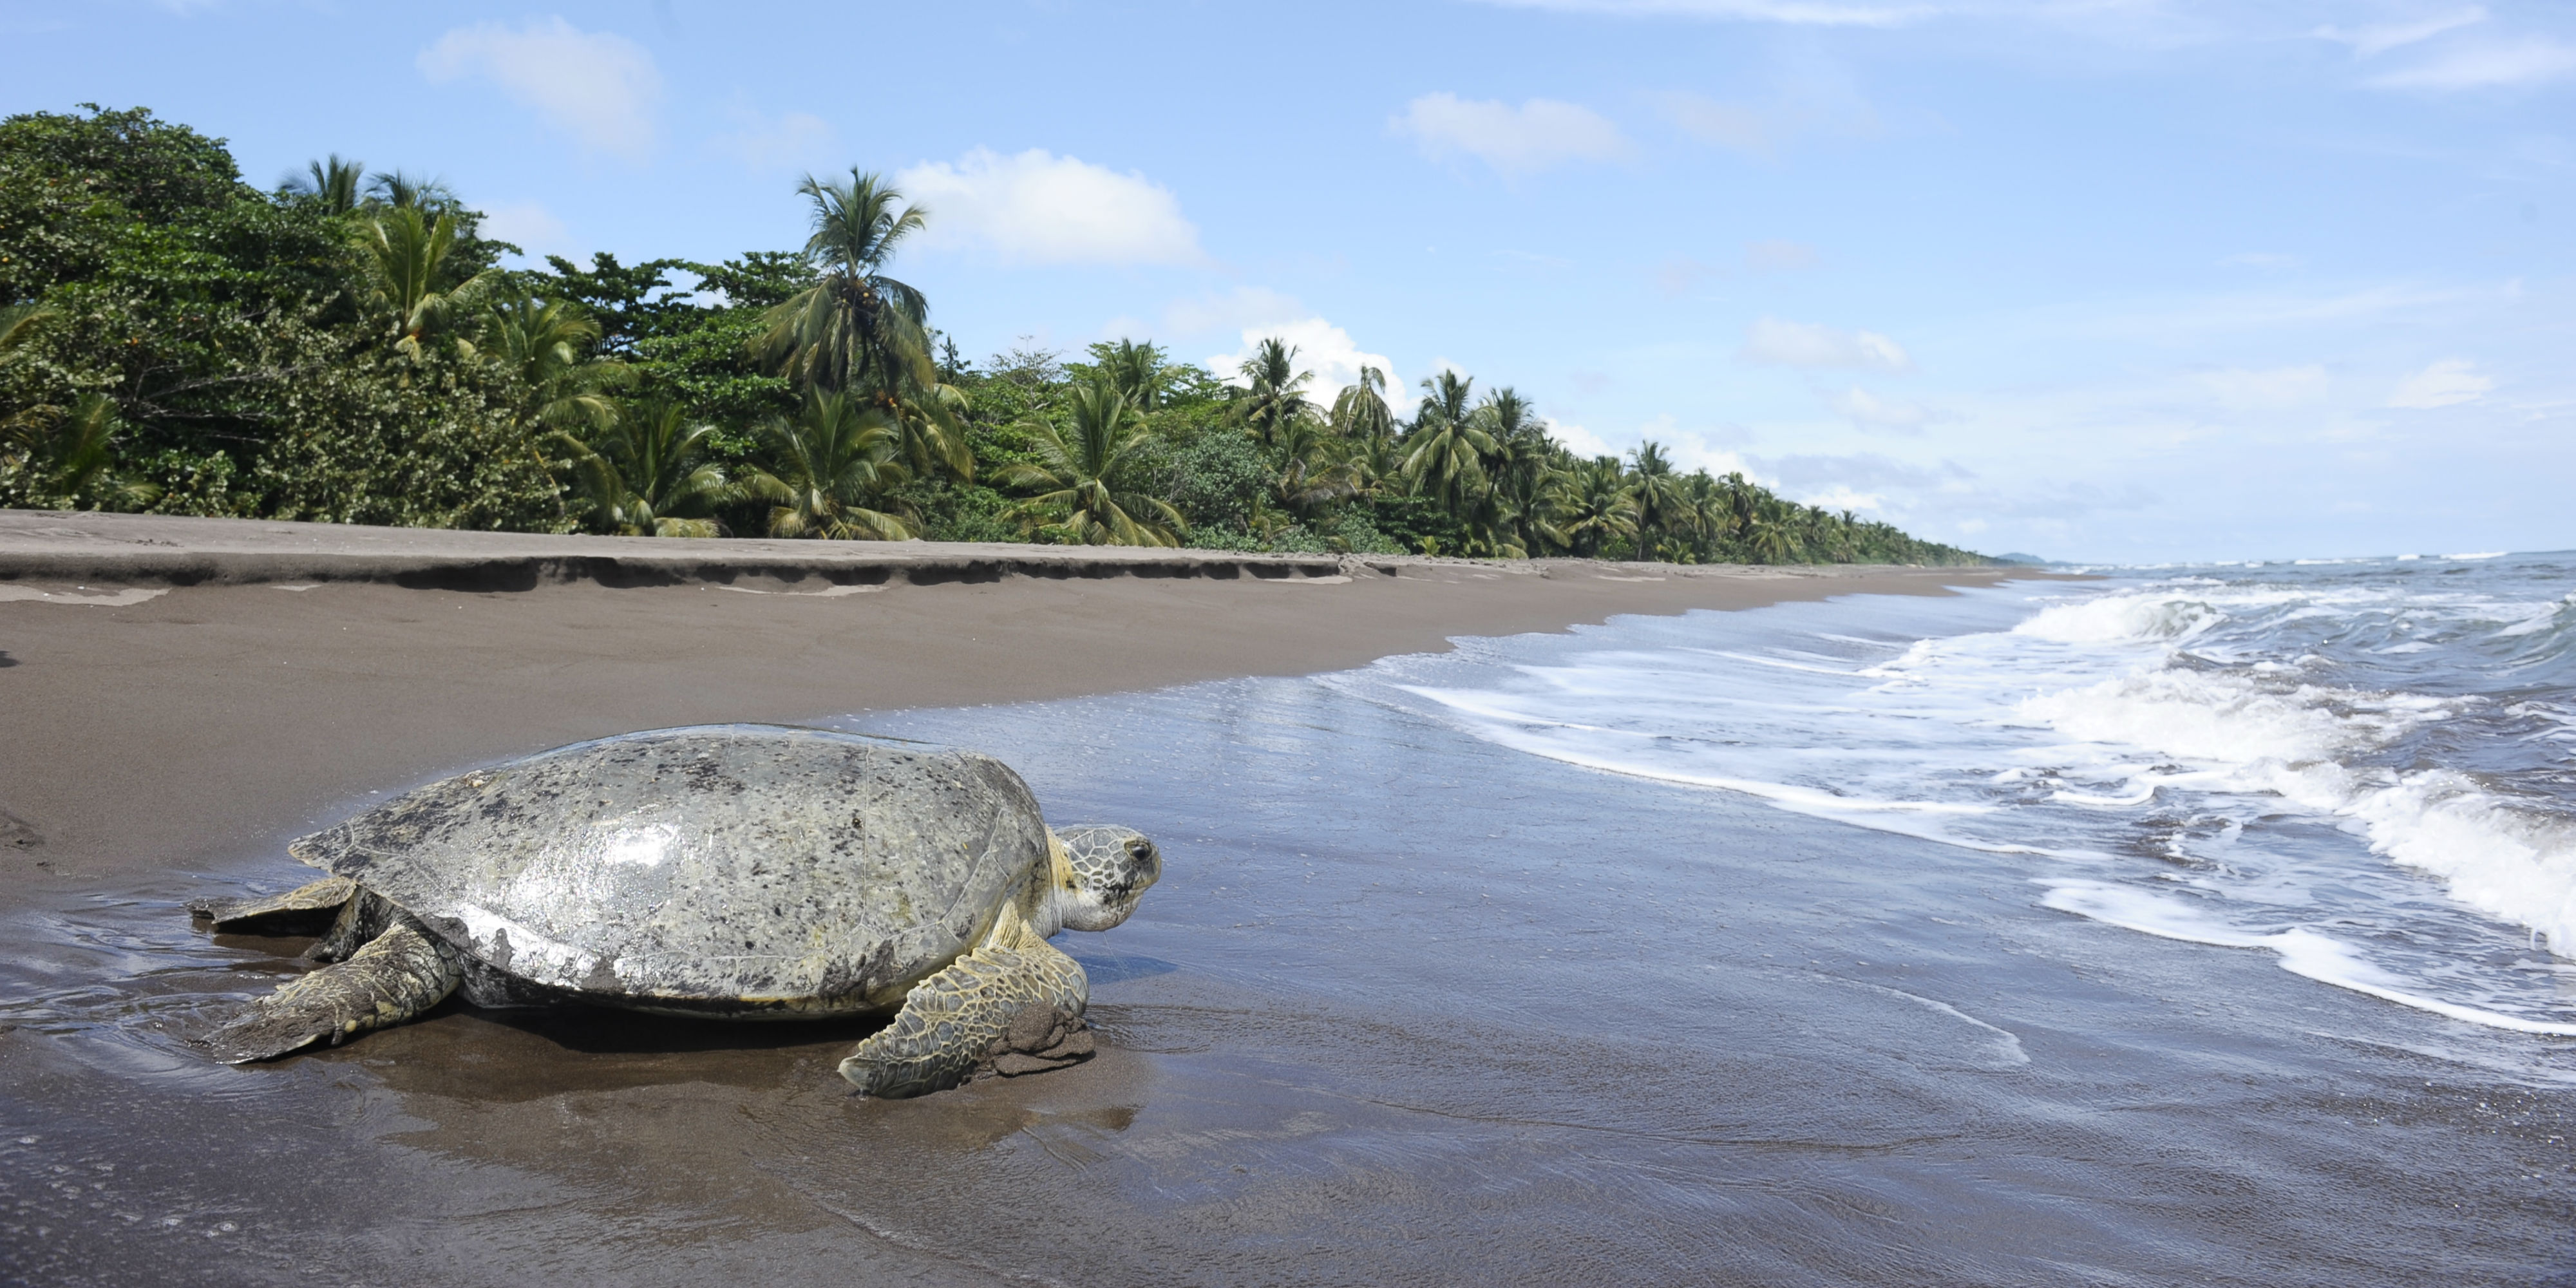 The endangered green sea turtle makes its way back to the ocean on a beach in Costa Rica.